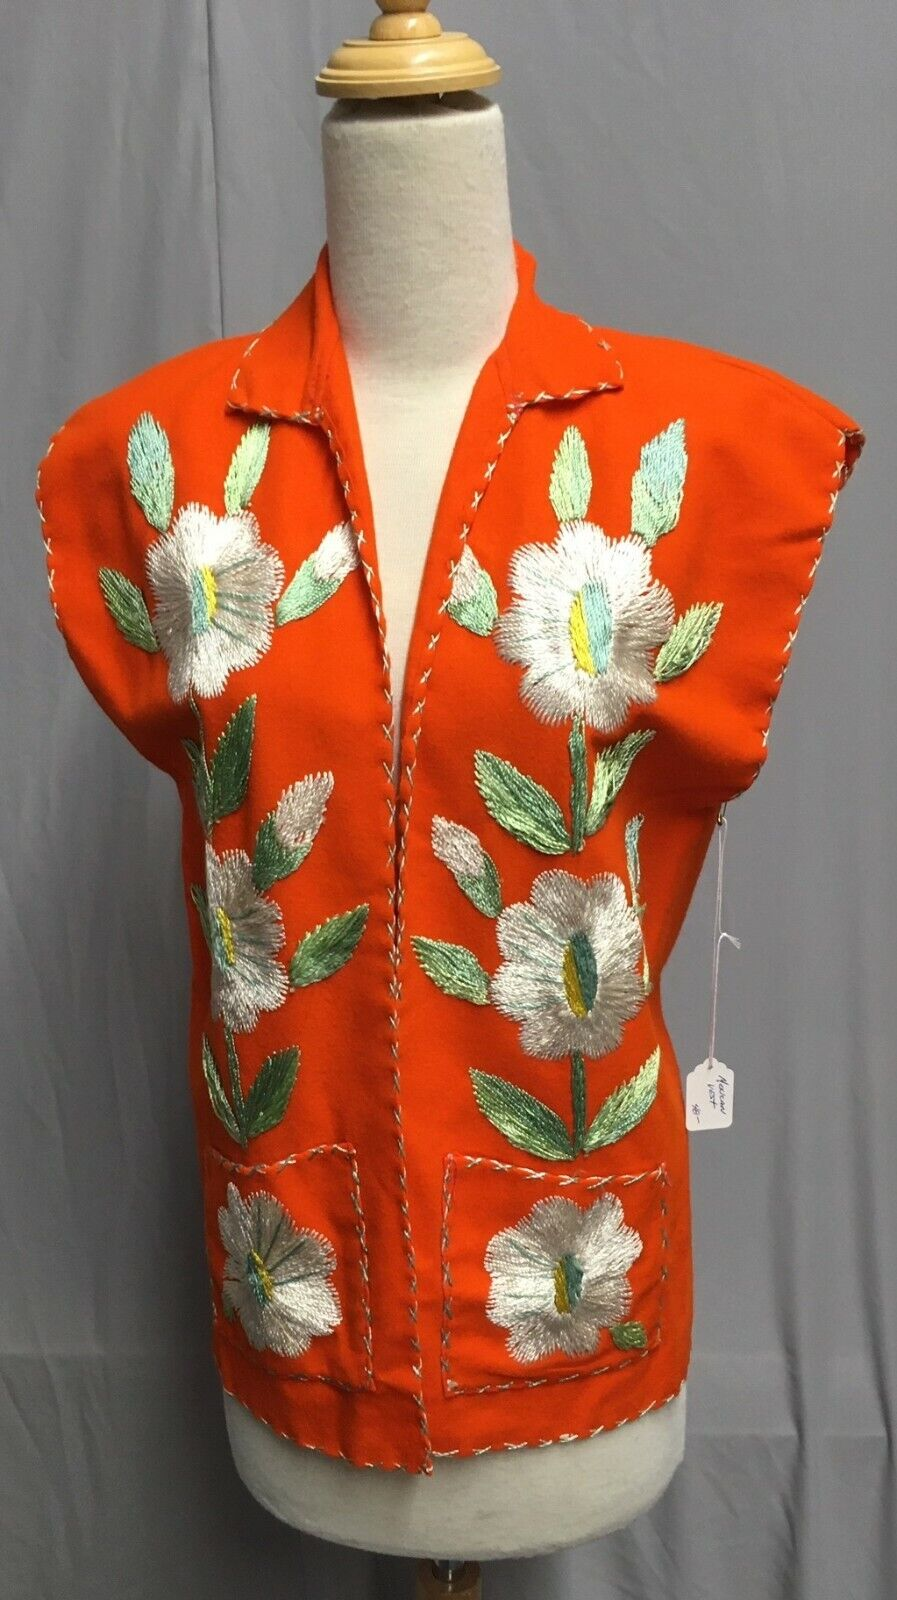 #20-090, 1950's -1960's Mexico Orange Felted Wool Embroidered Floral Souvenir Ja